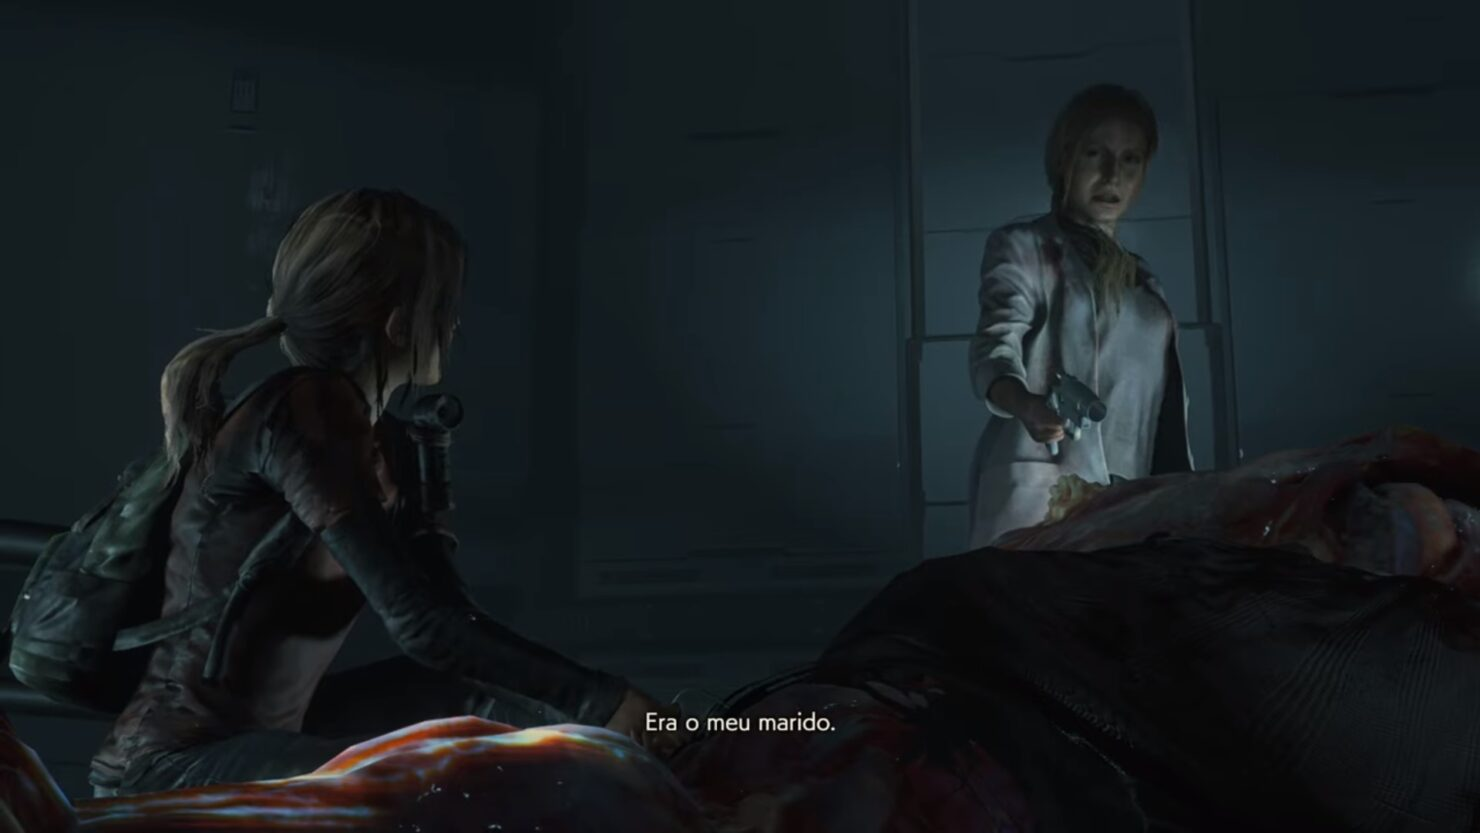 2019_12_27_07_12_51_you_can_now_play_as_ellie_from_the_last_of_us_in_resident_evil_2_remake_dsogam